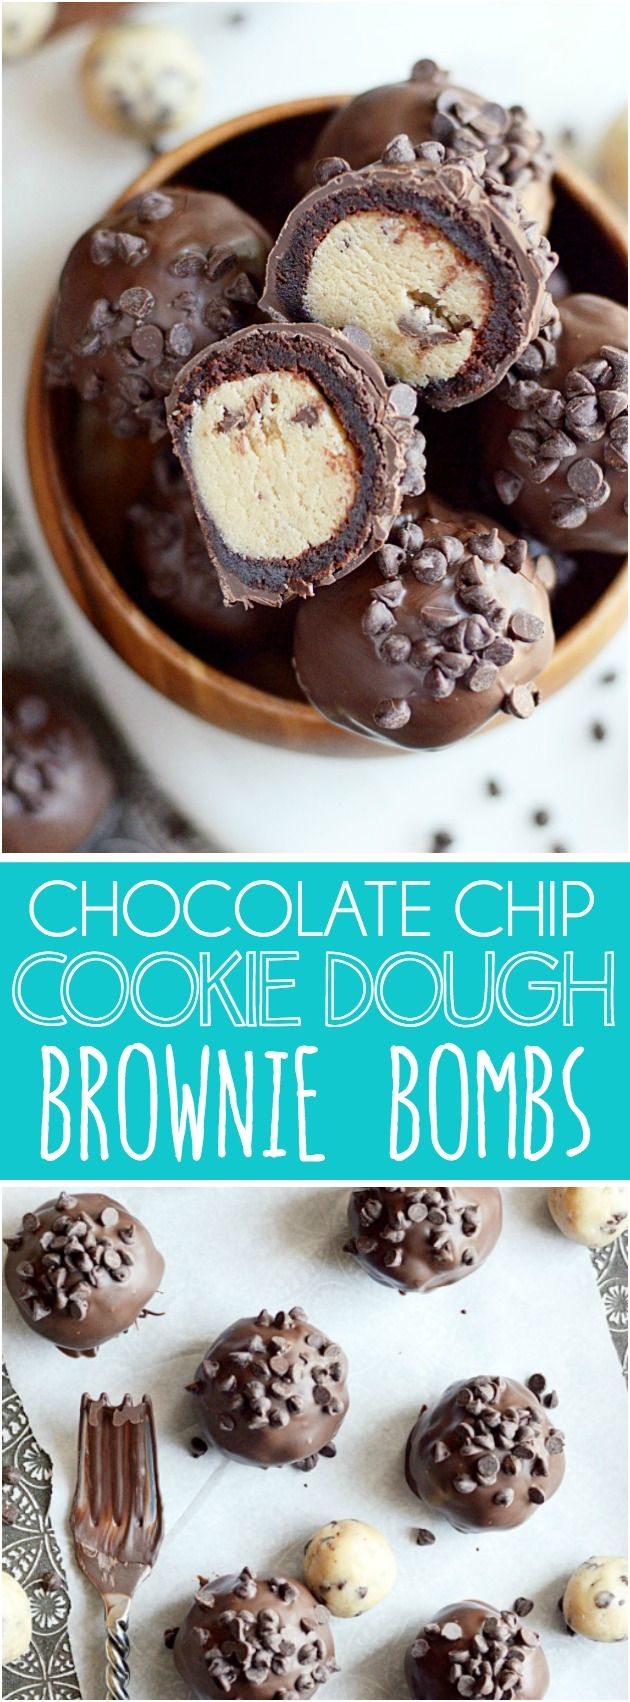 Cookie dough wrapped in a brownie and covered in chocolate. These Cookie Dough Brownie Bombs are even better than they look!